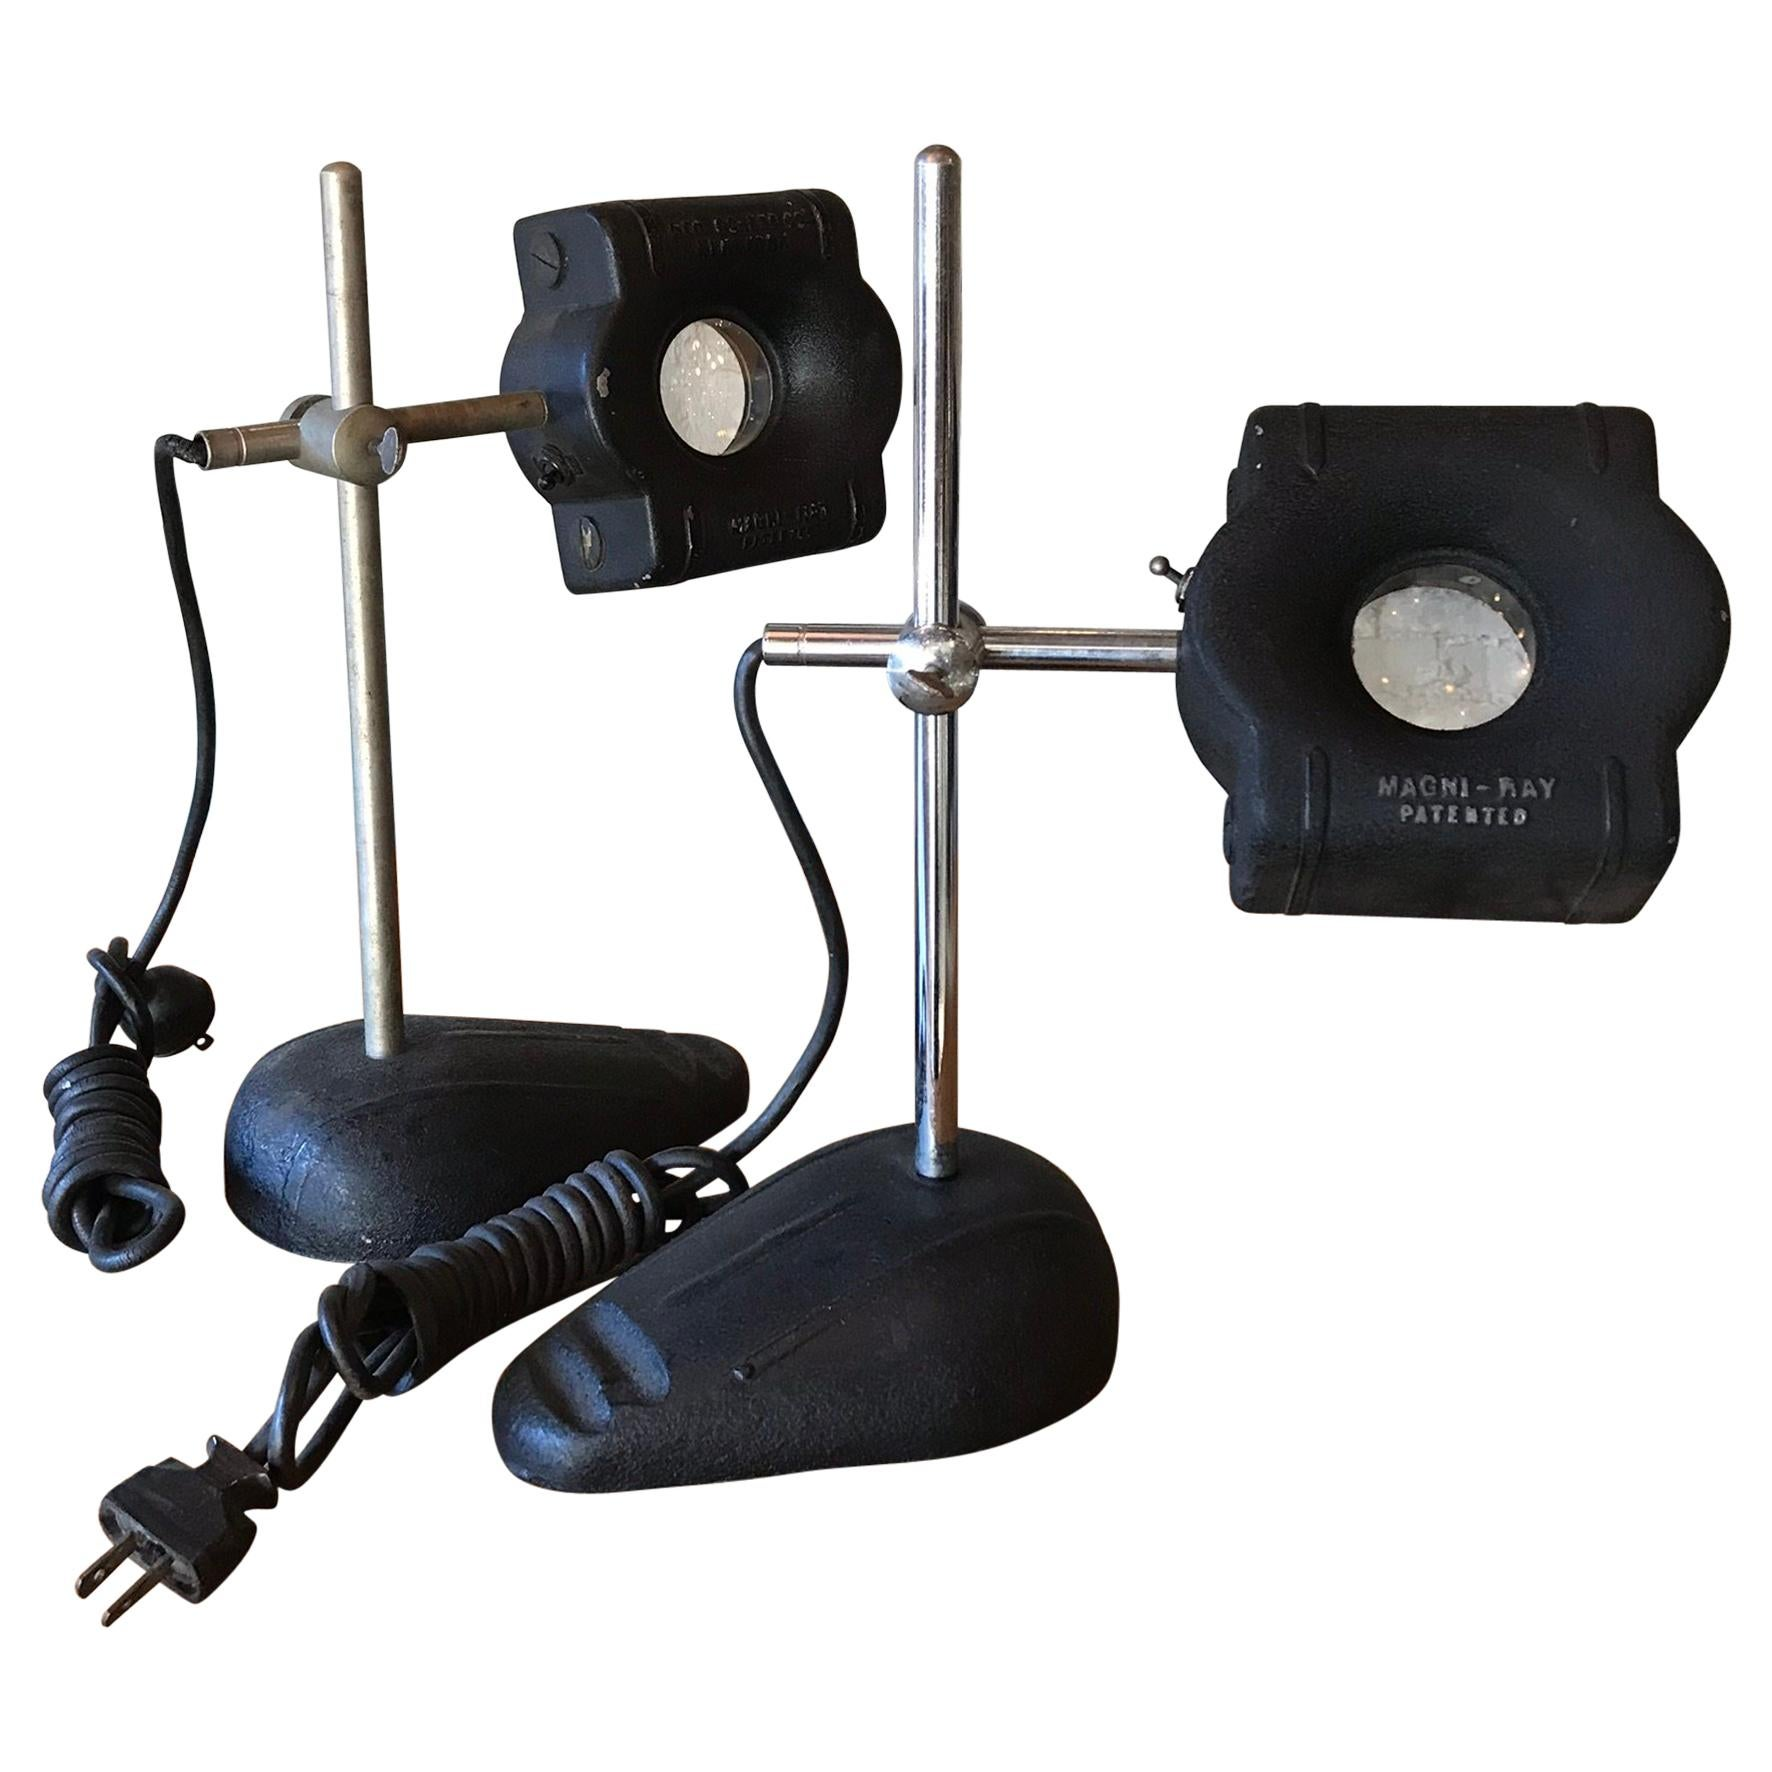 Industrial Magni-Ray Magnifying Jeweler's Table Lamps